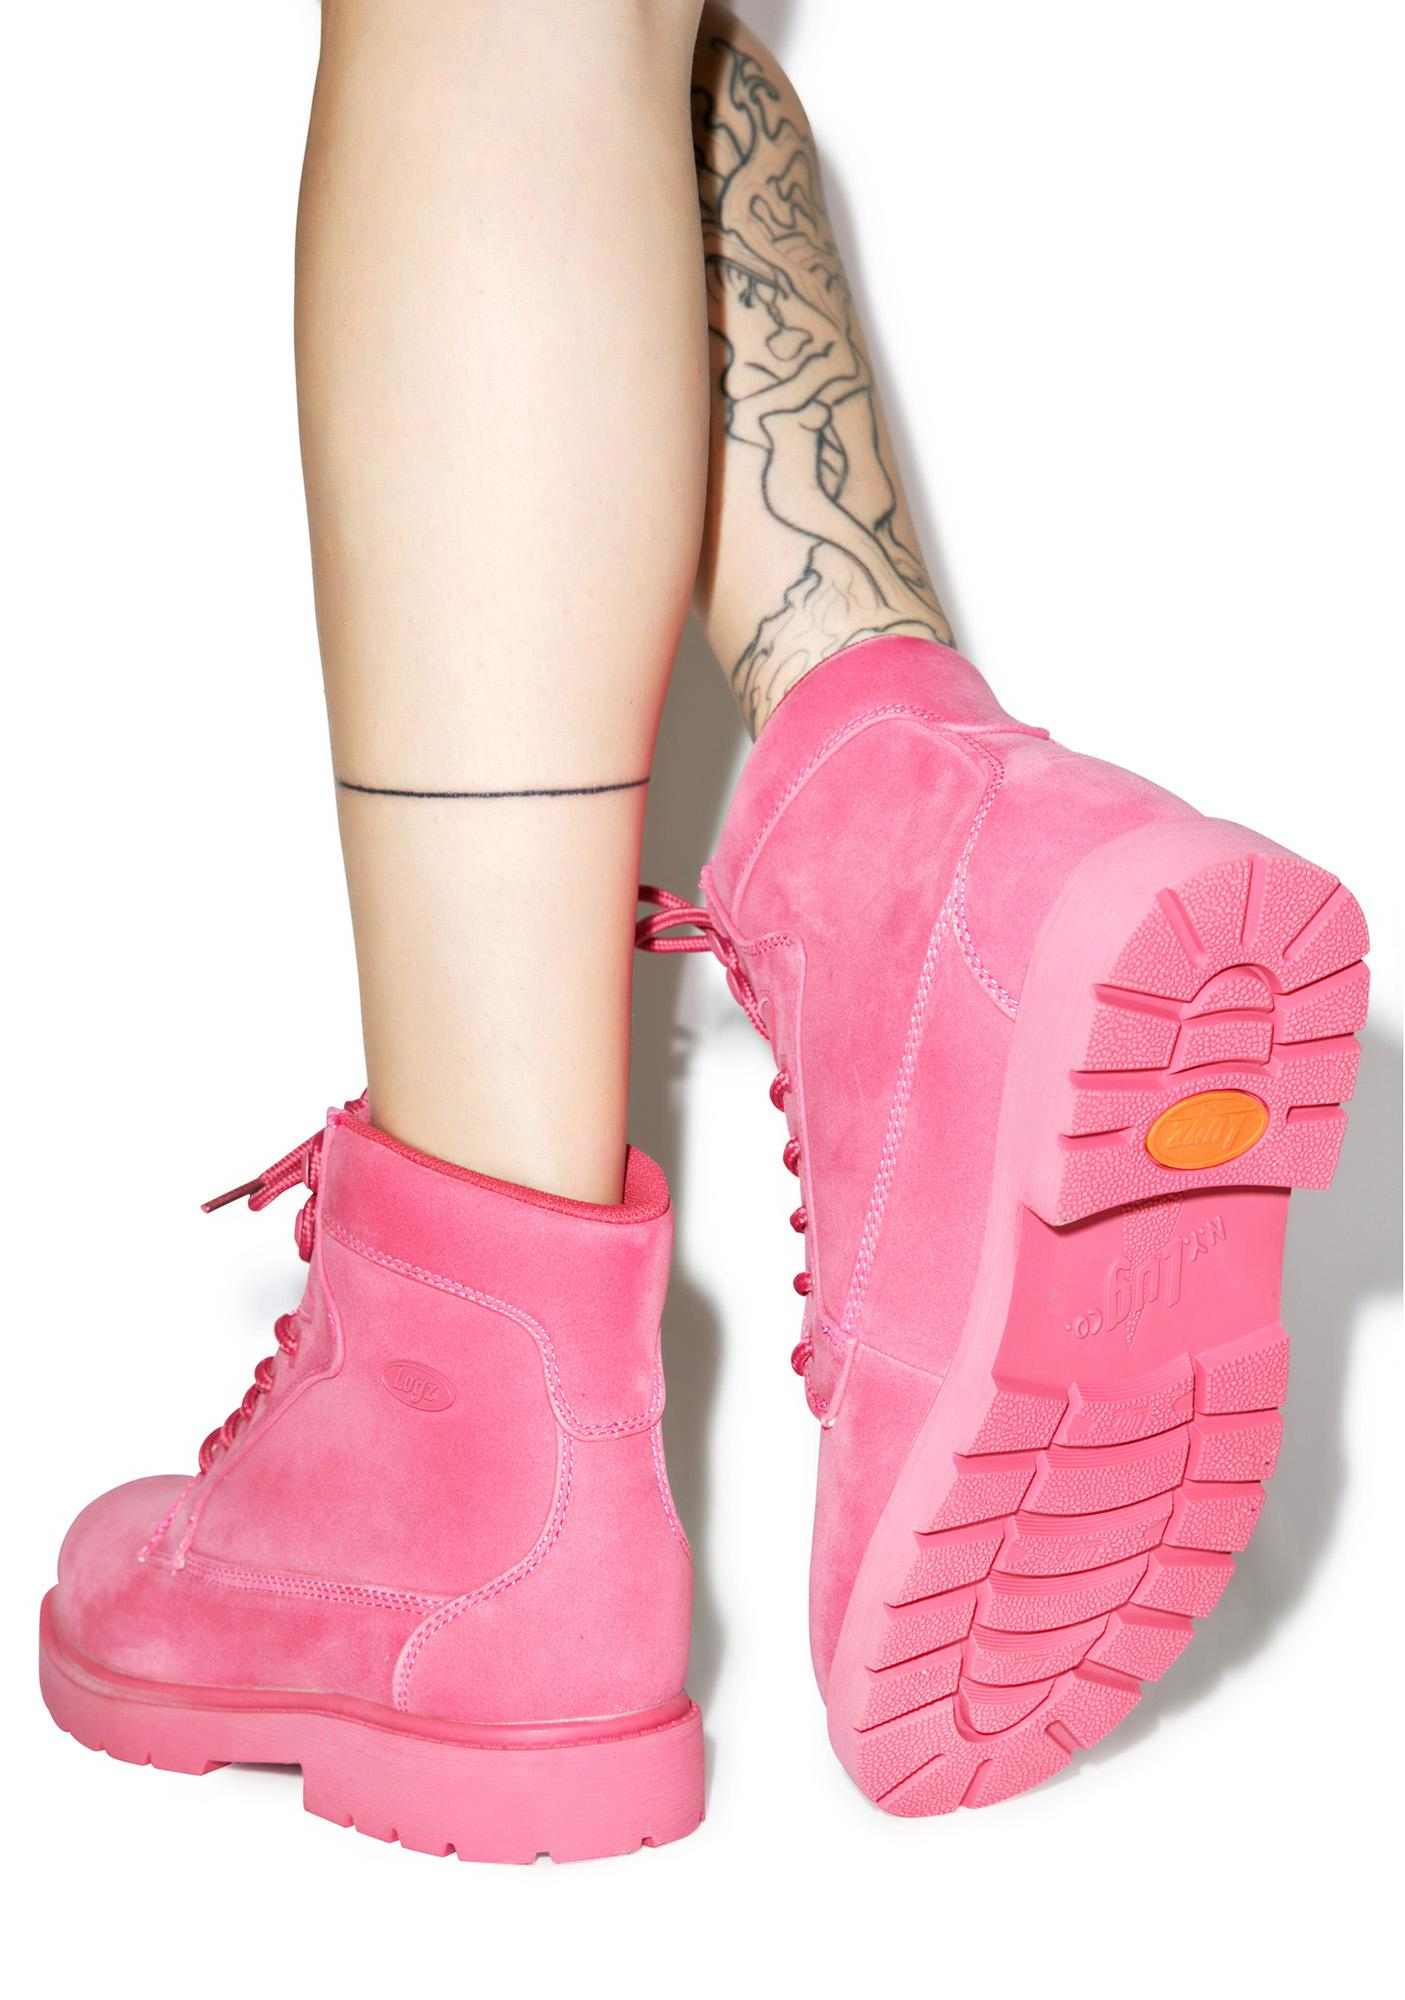 Lugz Raspberry Regiment Boots